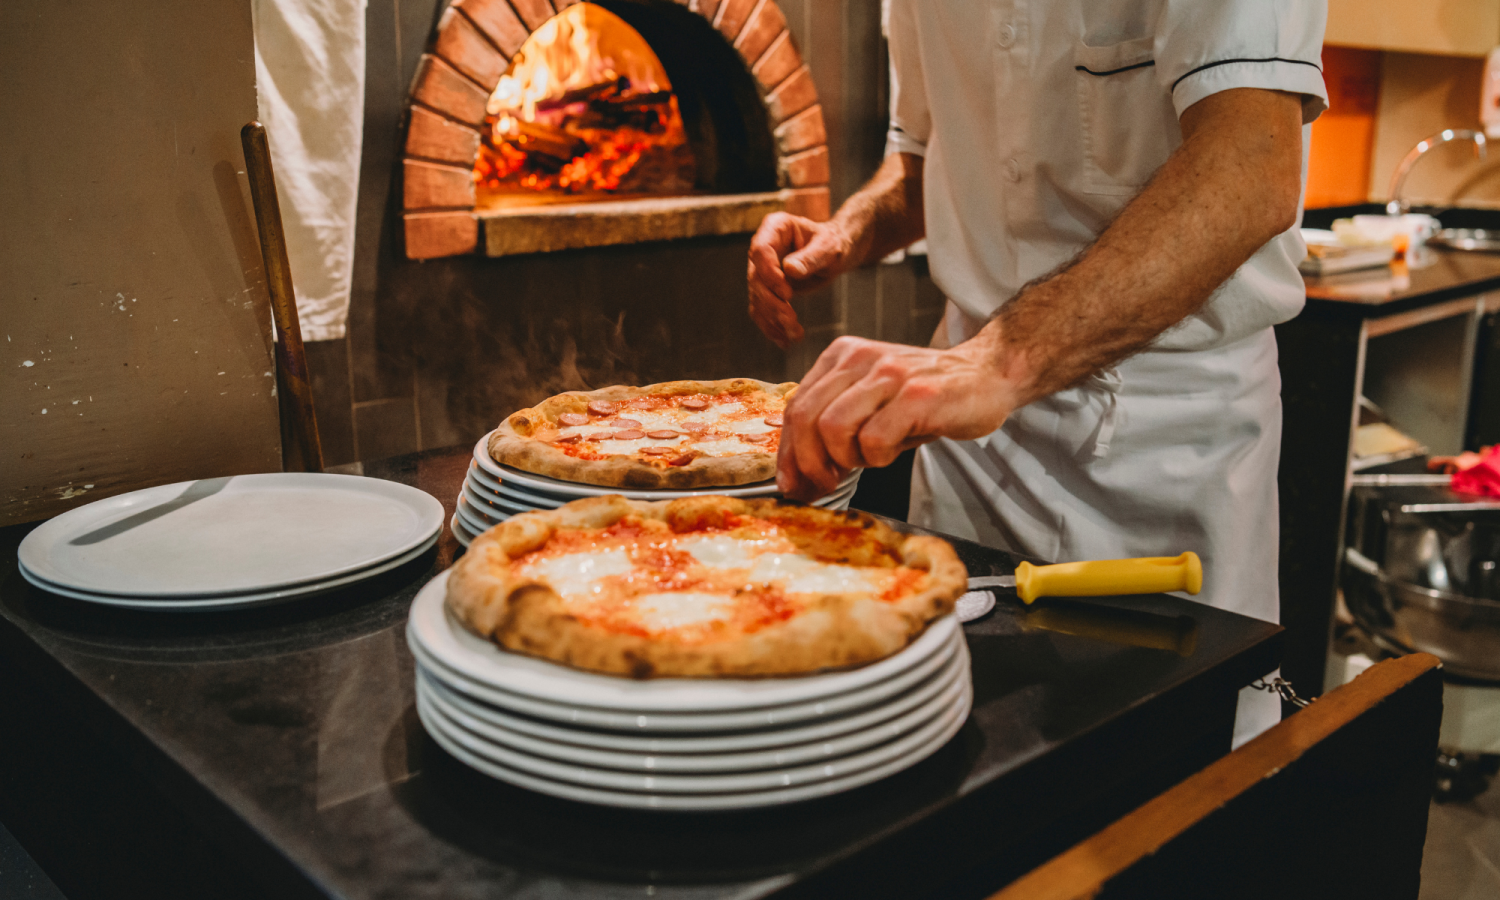 Photo of a pizza chef preparing two pizzas to put in the oven behind.